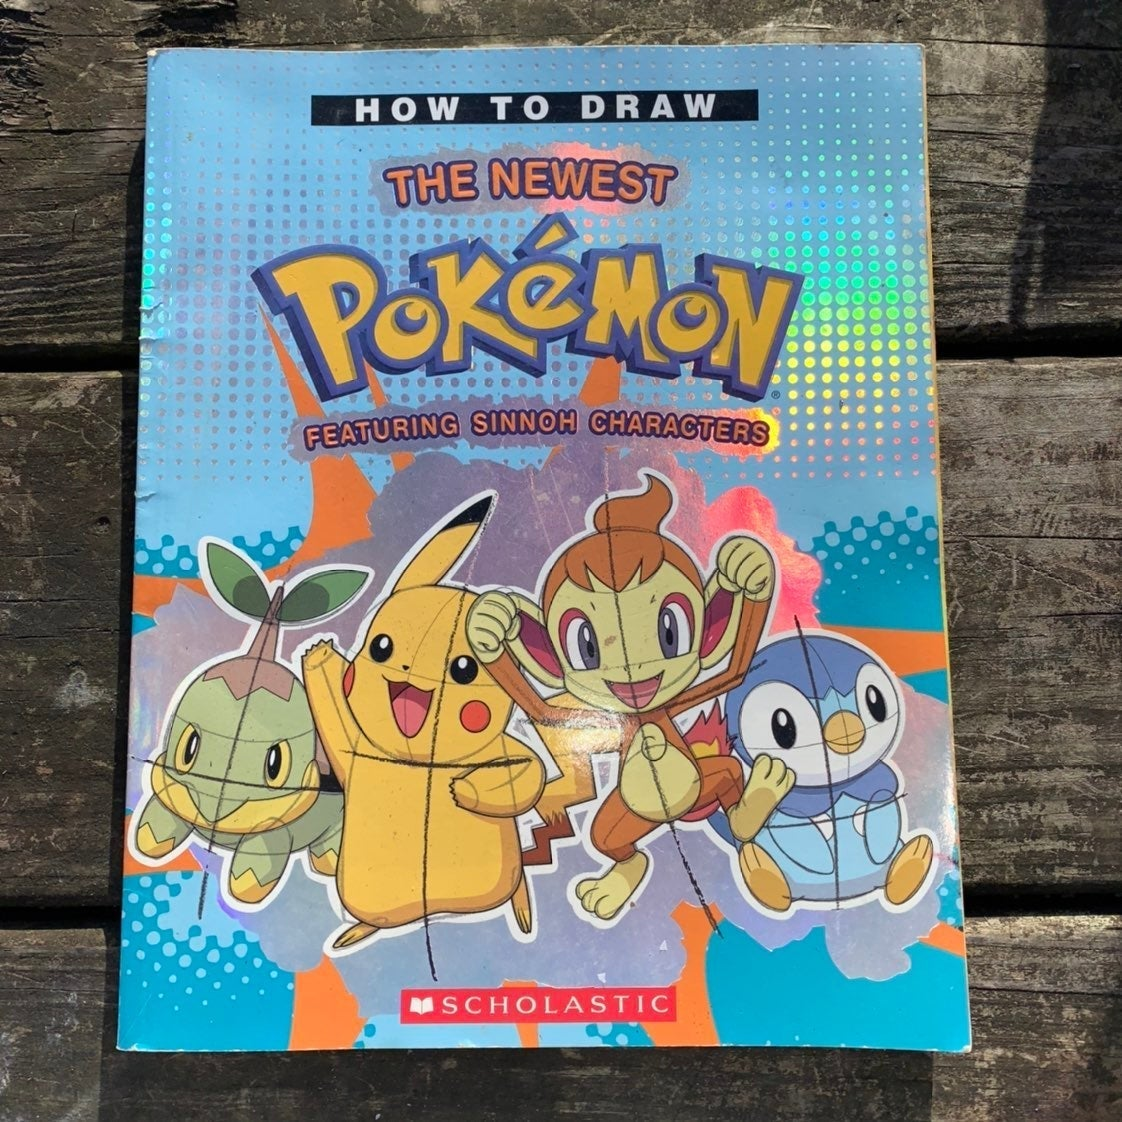 Pokémon Drawing book